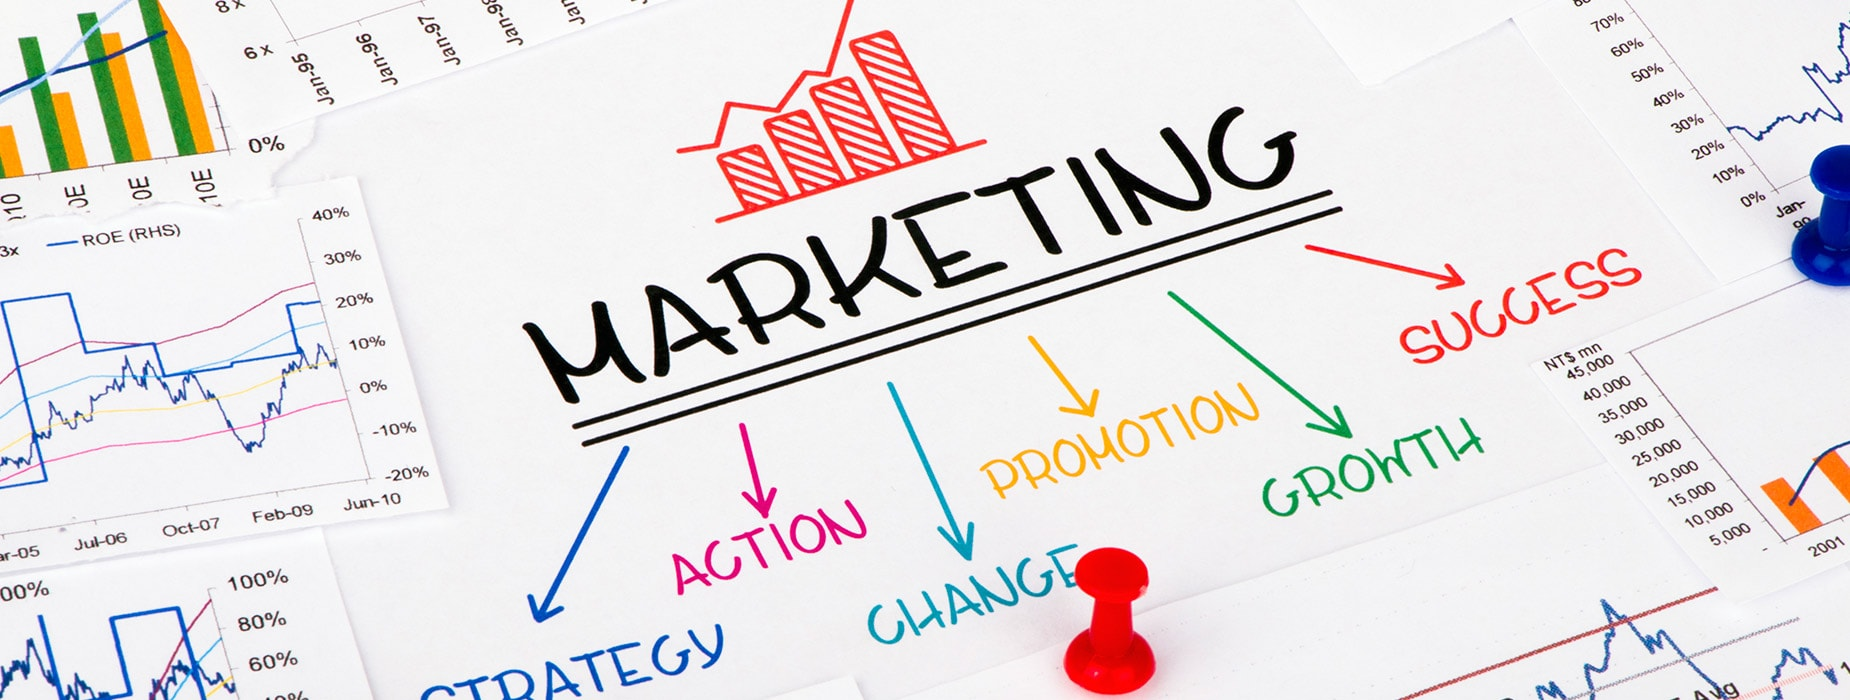 agencia de mercadotecnia, investigacion de mercados, agencia creativa, empresas de estudios de mercado, servicios de mercadotecnia, agencia de marketing, geomarketing, inbound marketing, fidelizacion de clientes, trade marketing, plan estrategico de marketing, marketing consultants , anuncio publicitario, marketing promocional, branding